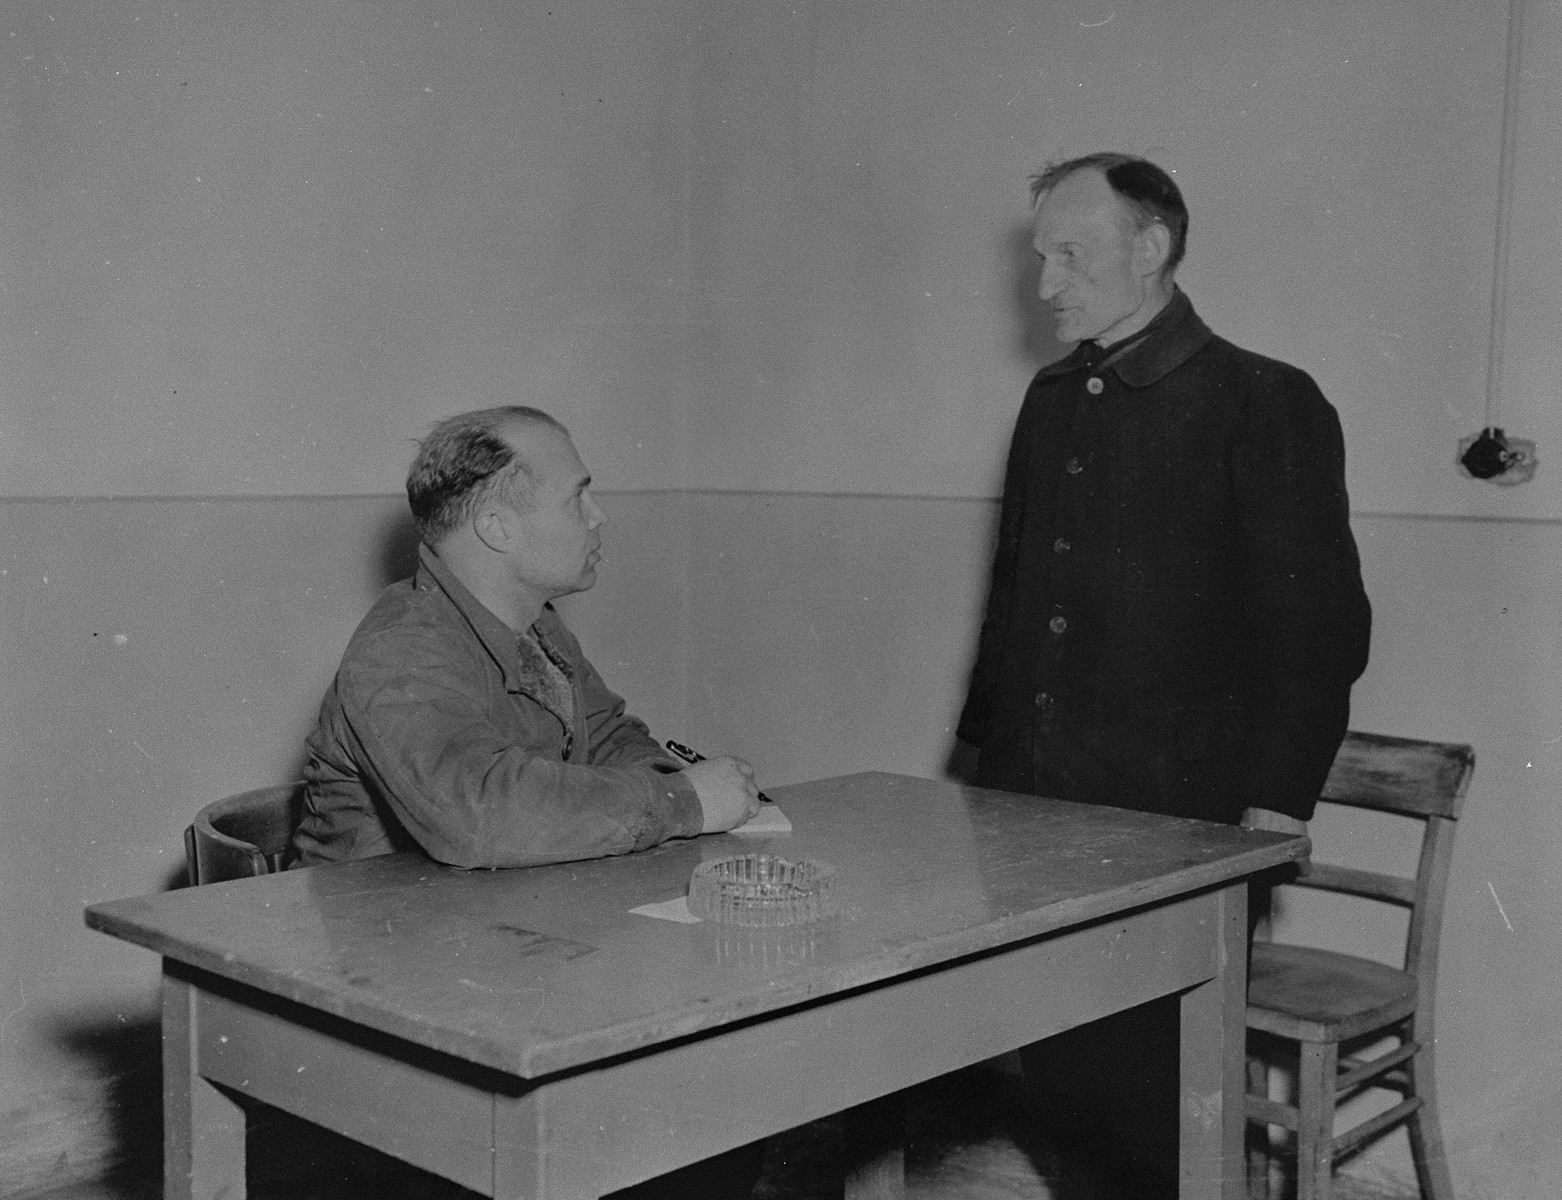 "An American investigator from the 79th Infantry Division, U.S. Ninth Army, questions Willi Fabian, a former railroad official and staff member in the Rothensee concentration camp.  Fabian was charged with mistreating laborers from Allied nations and was arrested on April 19, 1945 in Barleben, Germany.  When U.S. Ninth Army troops captured the concentration camp for Soviet civilians located near Recklinghausen, Germany, they converted it into a separation center for prisoners of war and war criminals.  After the first German prisoners arrived at the camp they were sent to the interrogation department, which was supervised by Captain Harold Puttfer and Lieutenant H. Goodman.  The camp had three sections called ""cages.""  One of these was for women, another for persons incarcerated for minor offenses, and the third for hardened criminals.  All three sections were filled to capacity, totalling 20,000 prisoners."